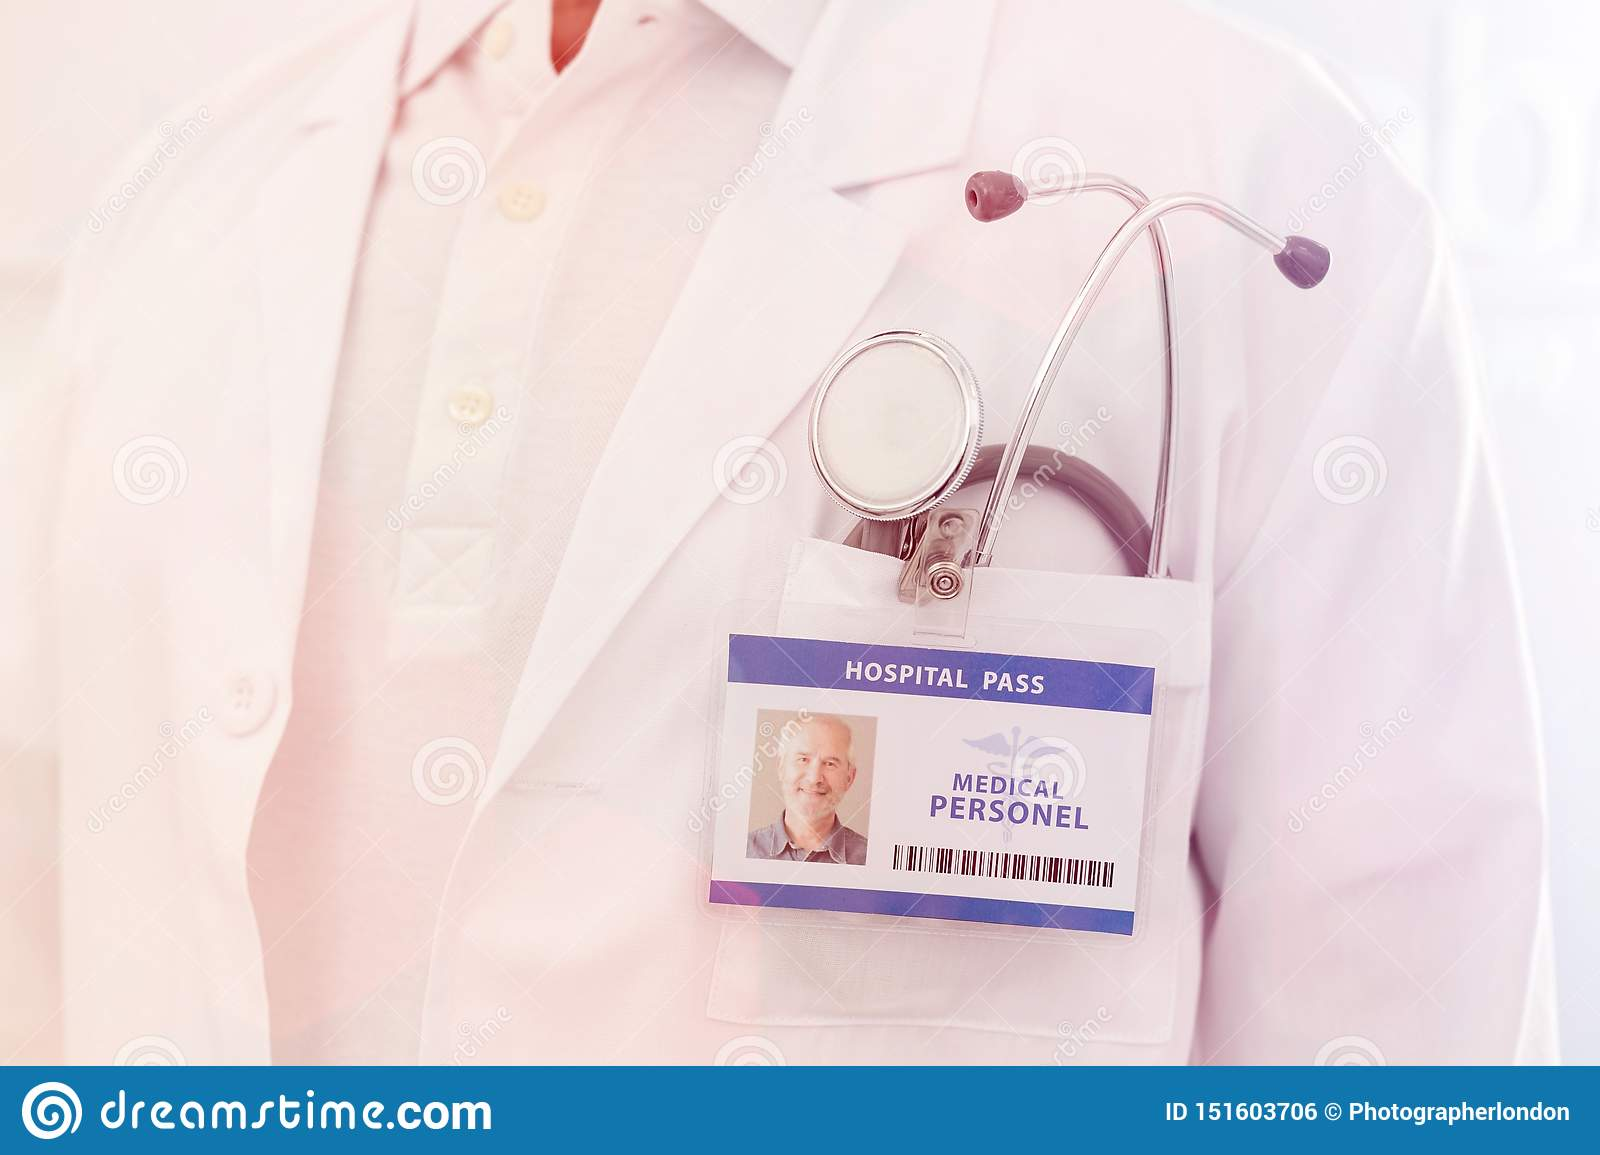 Midsection of senior doctor with identity card and stethoscope at hospital